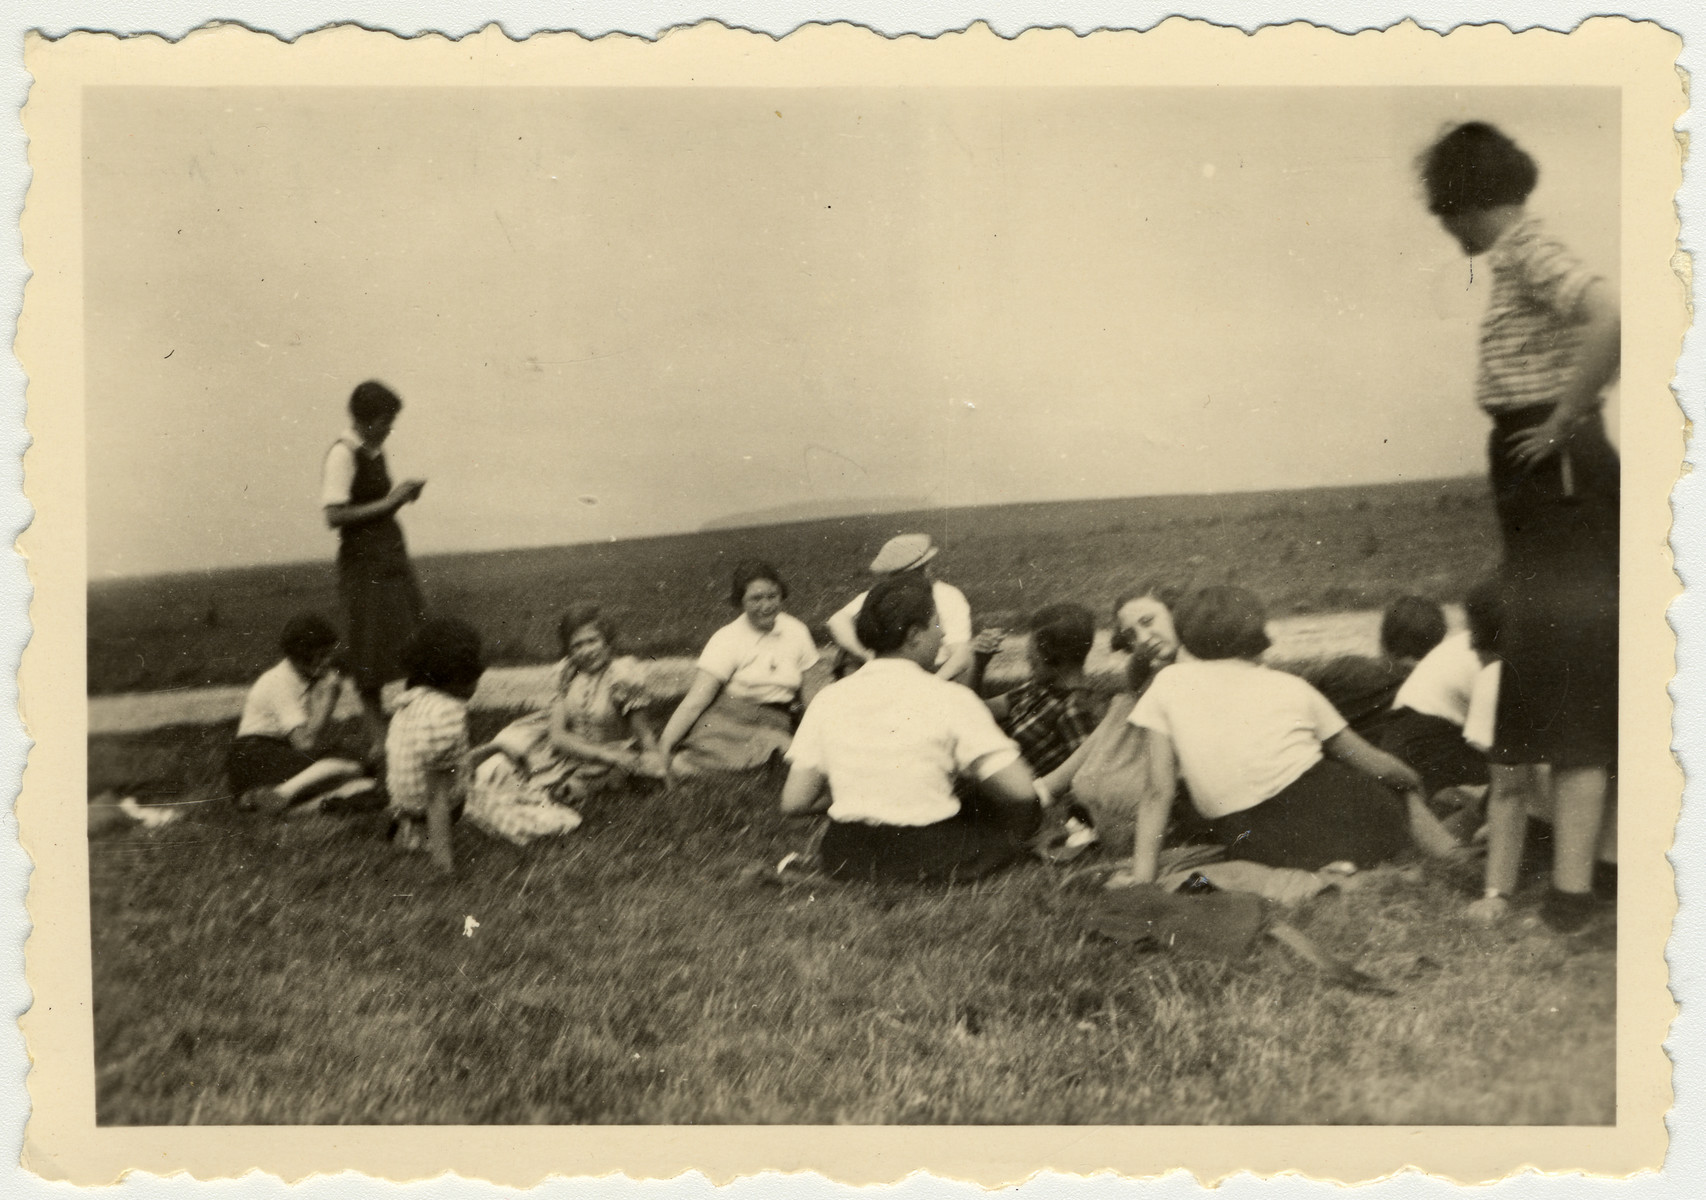 Ruth Rappaport and her friends from the Zionist movement rest in a field in Vyzhnytsa..